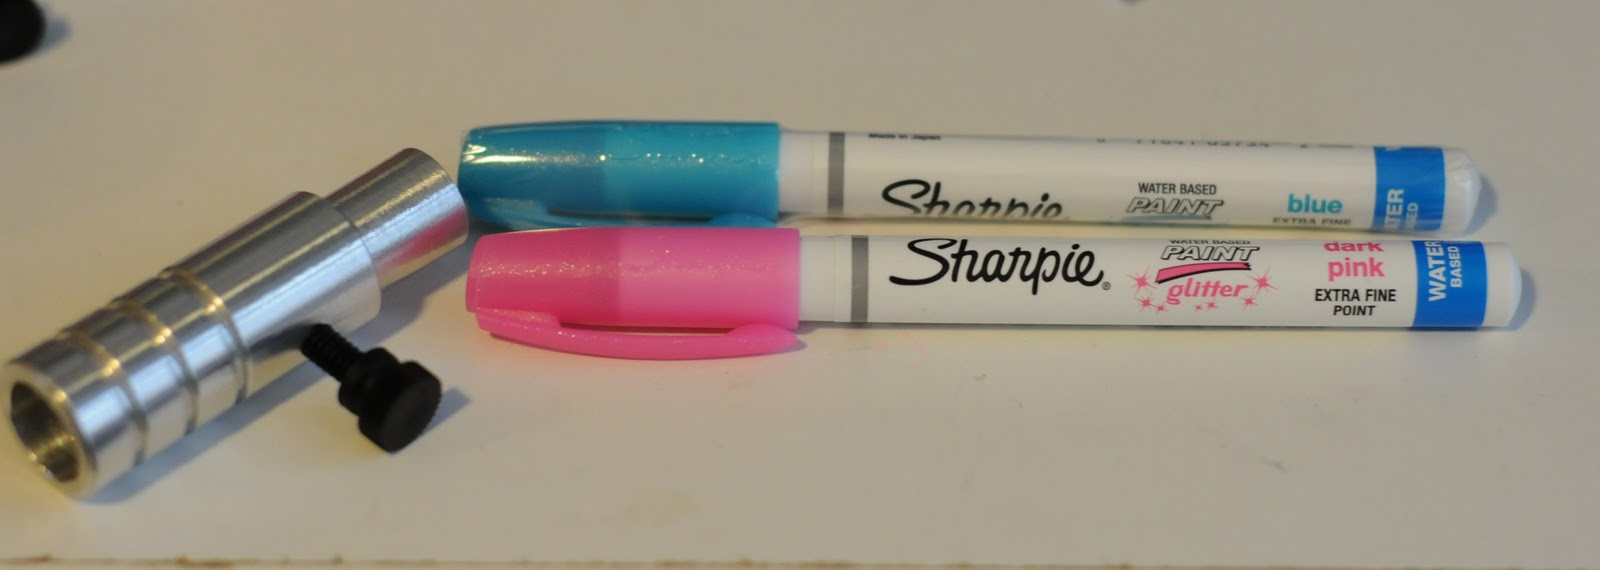 how to get rid of sharpie on my mac